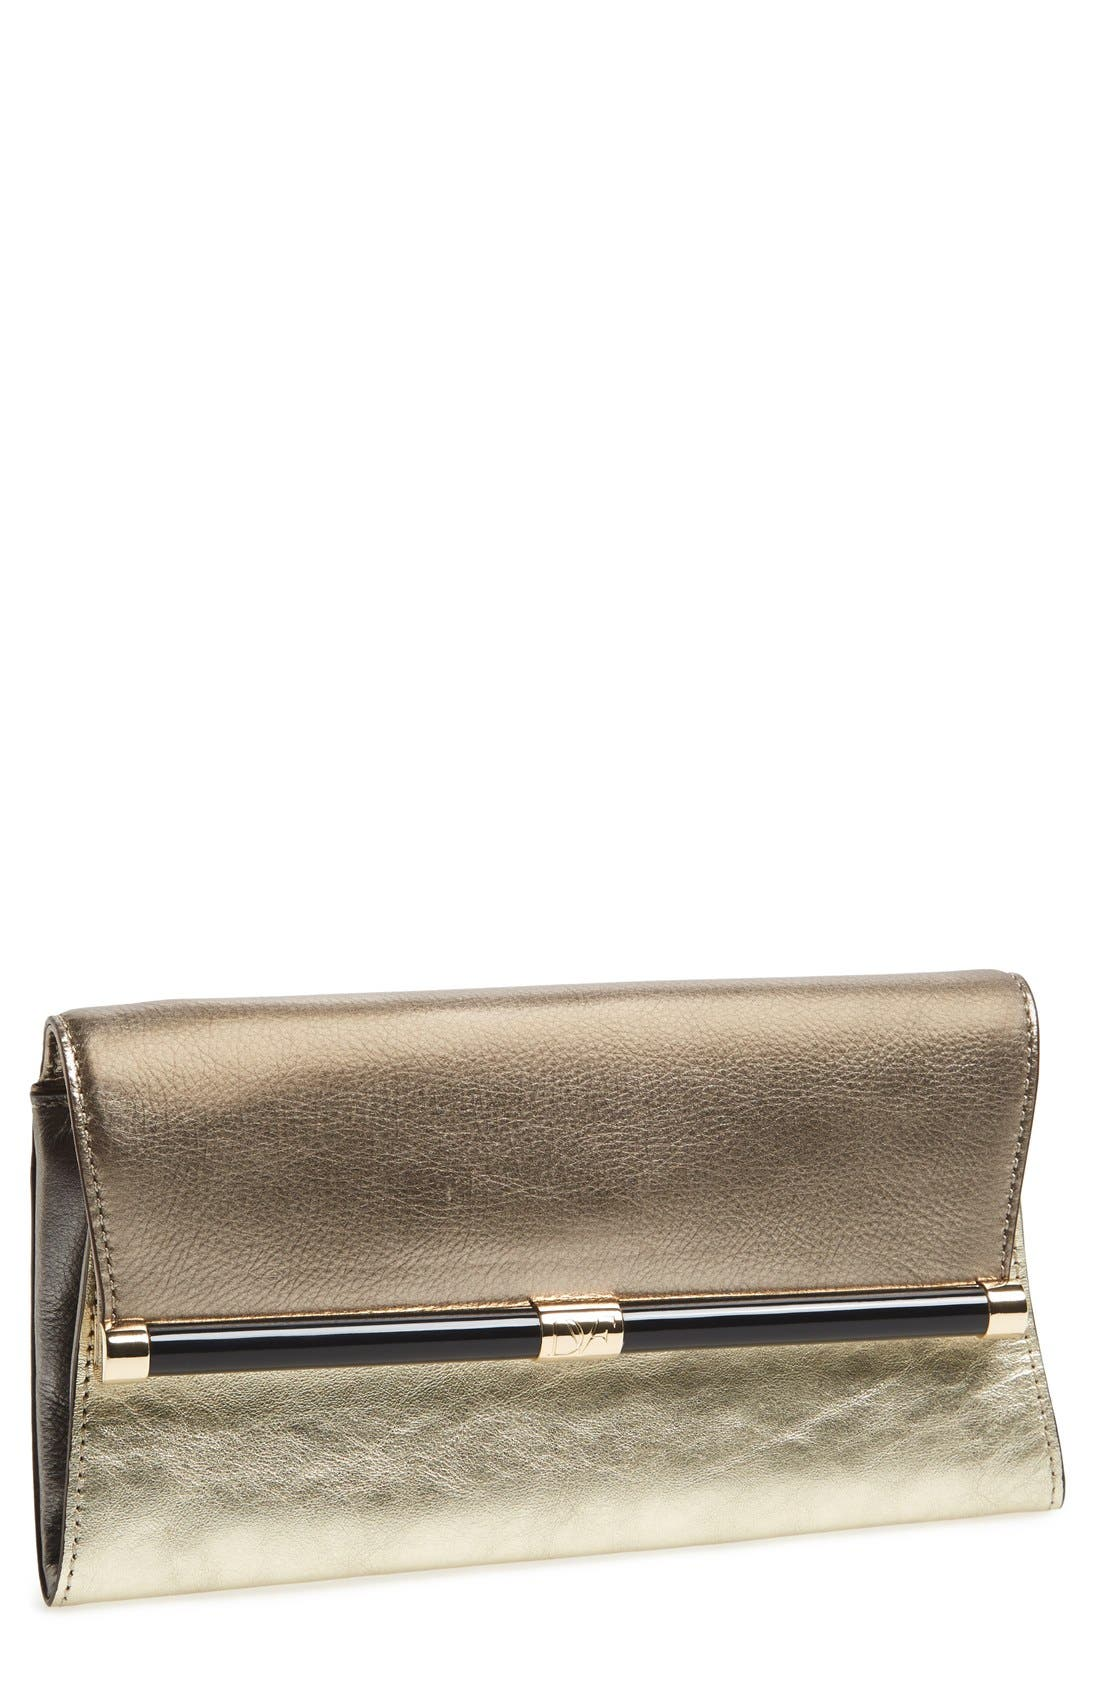 '440 - Mixed Metallic' Envelope Clutch,                             Main thumbnail 1, color,                             710